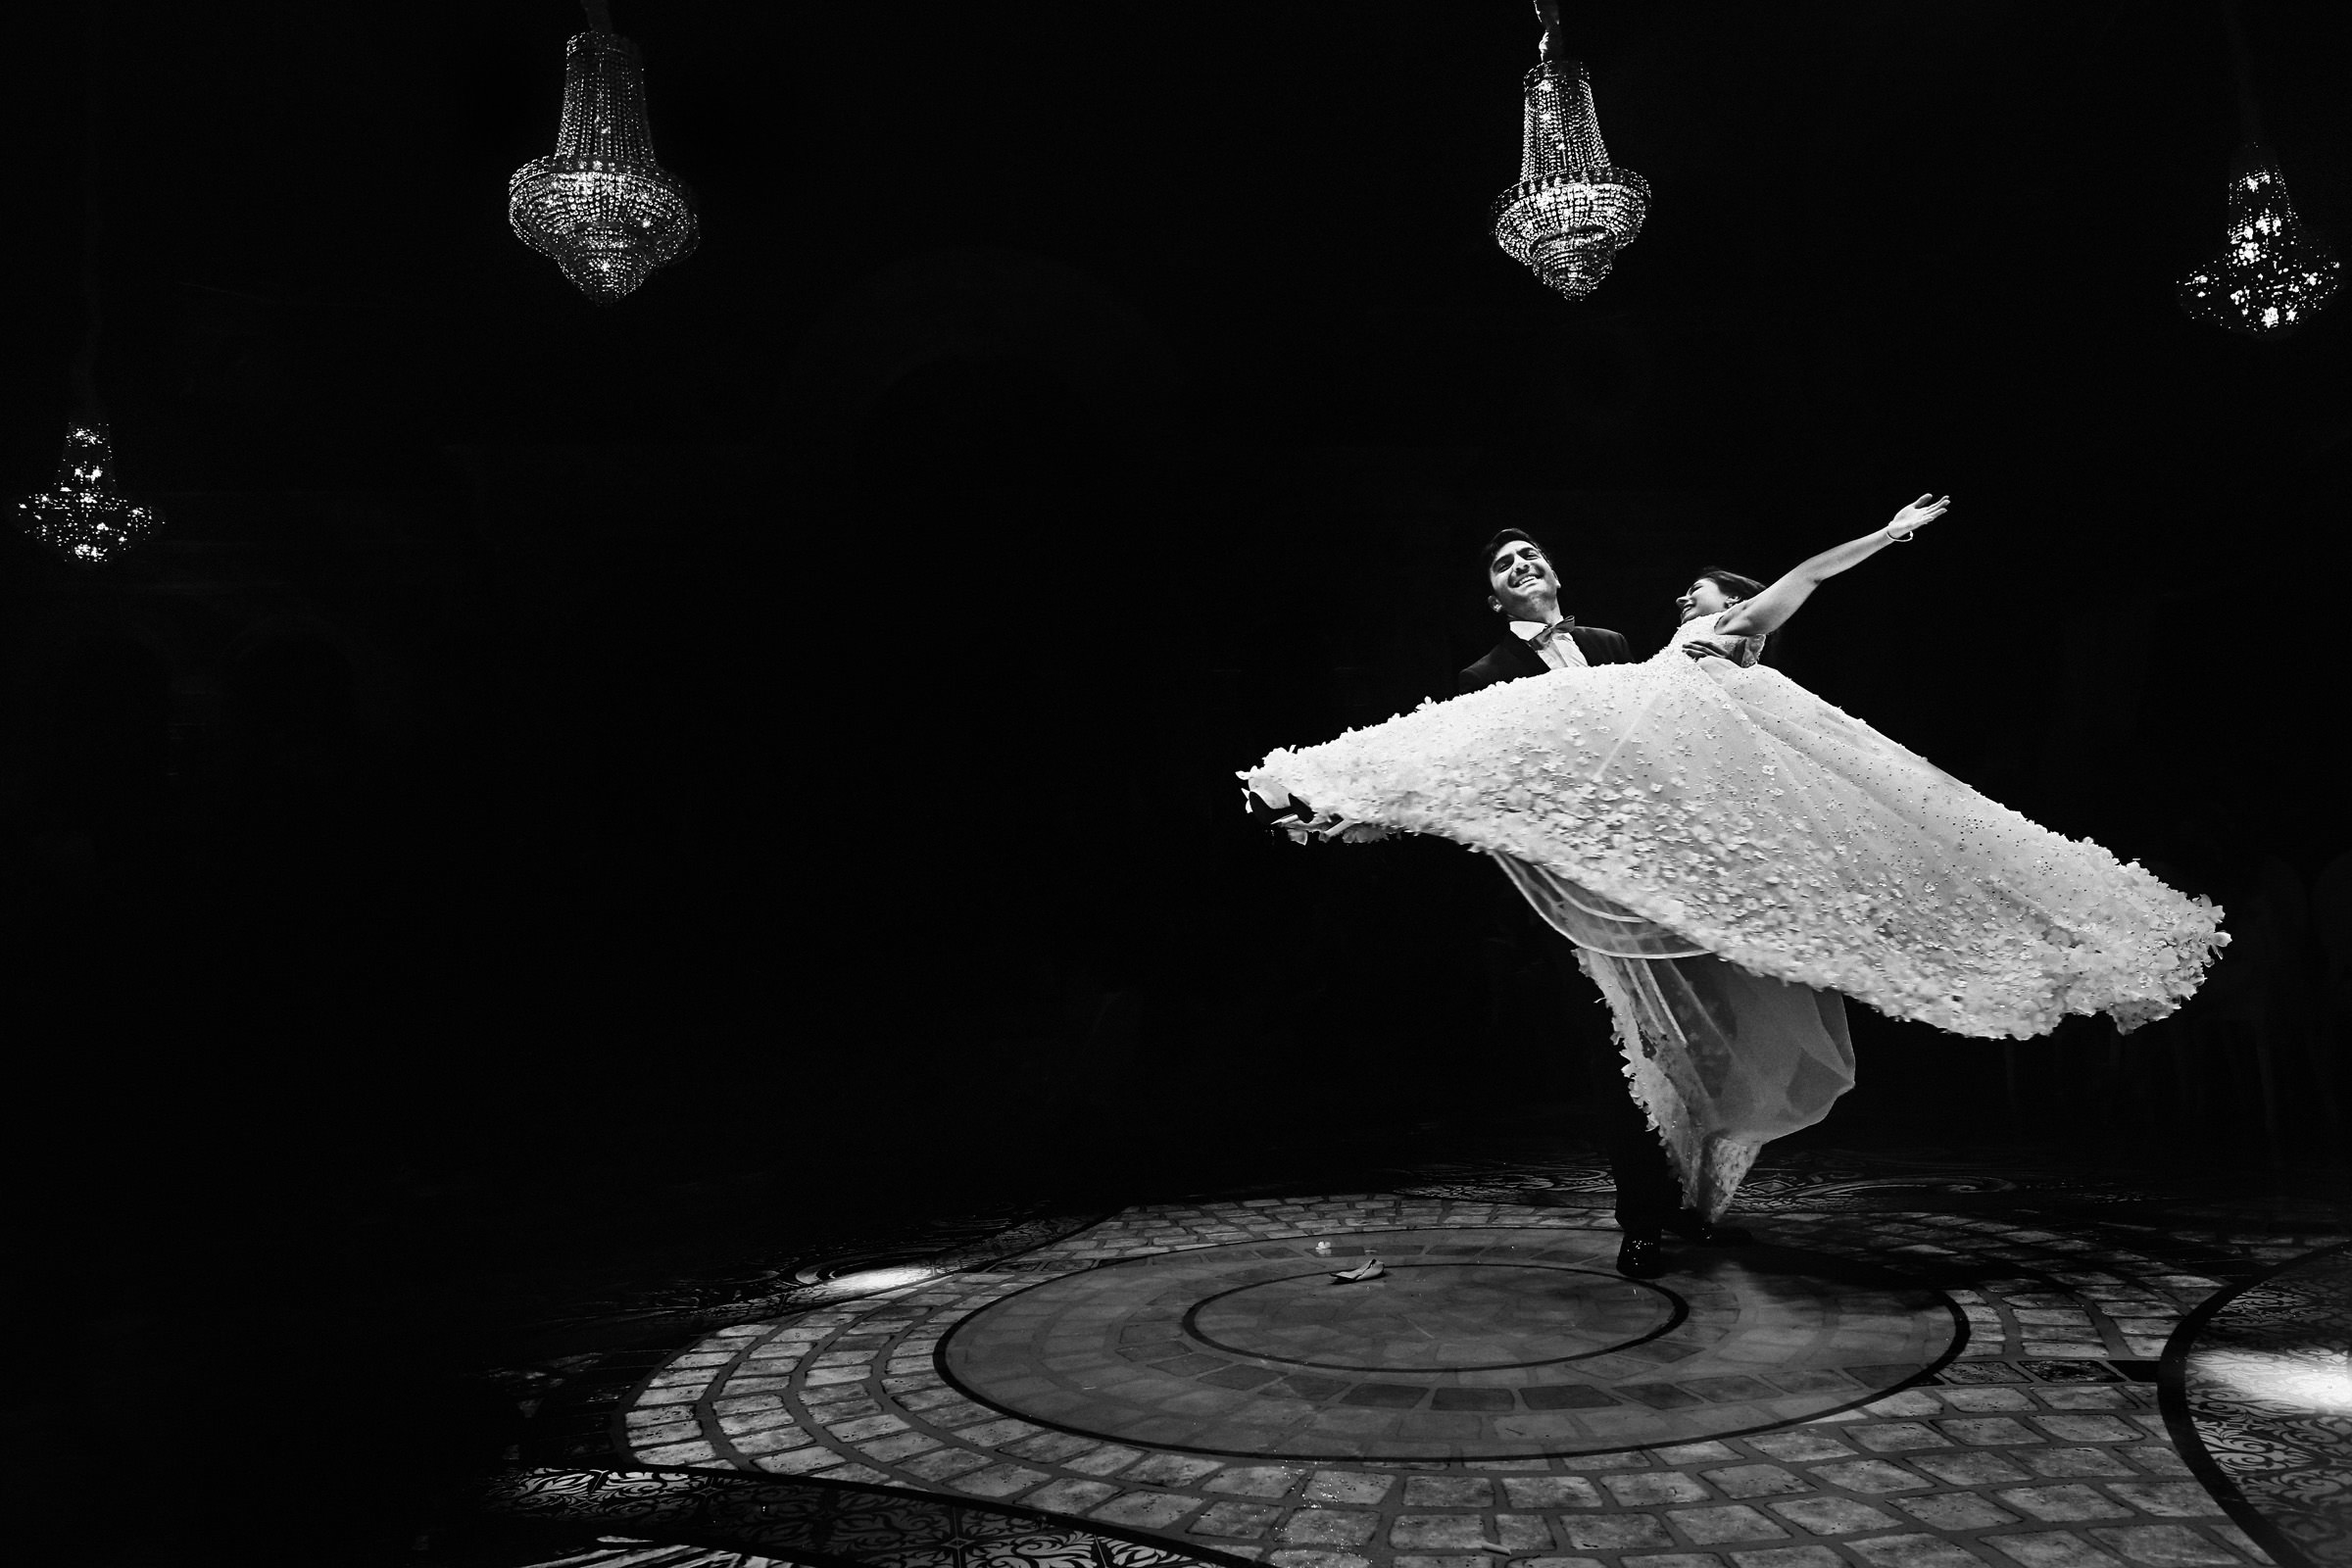 First dance of couple twirling on dance floor, by Franck Boutonnet